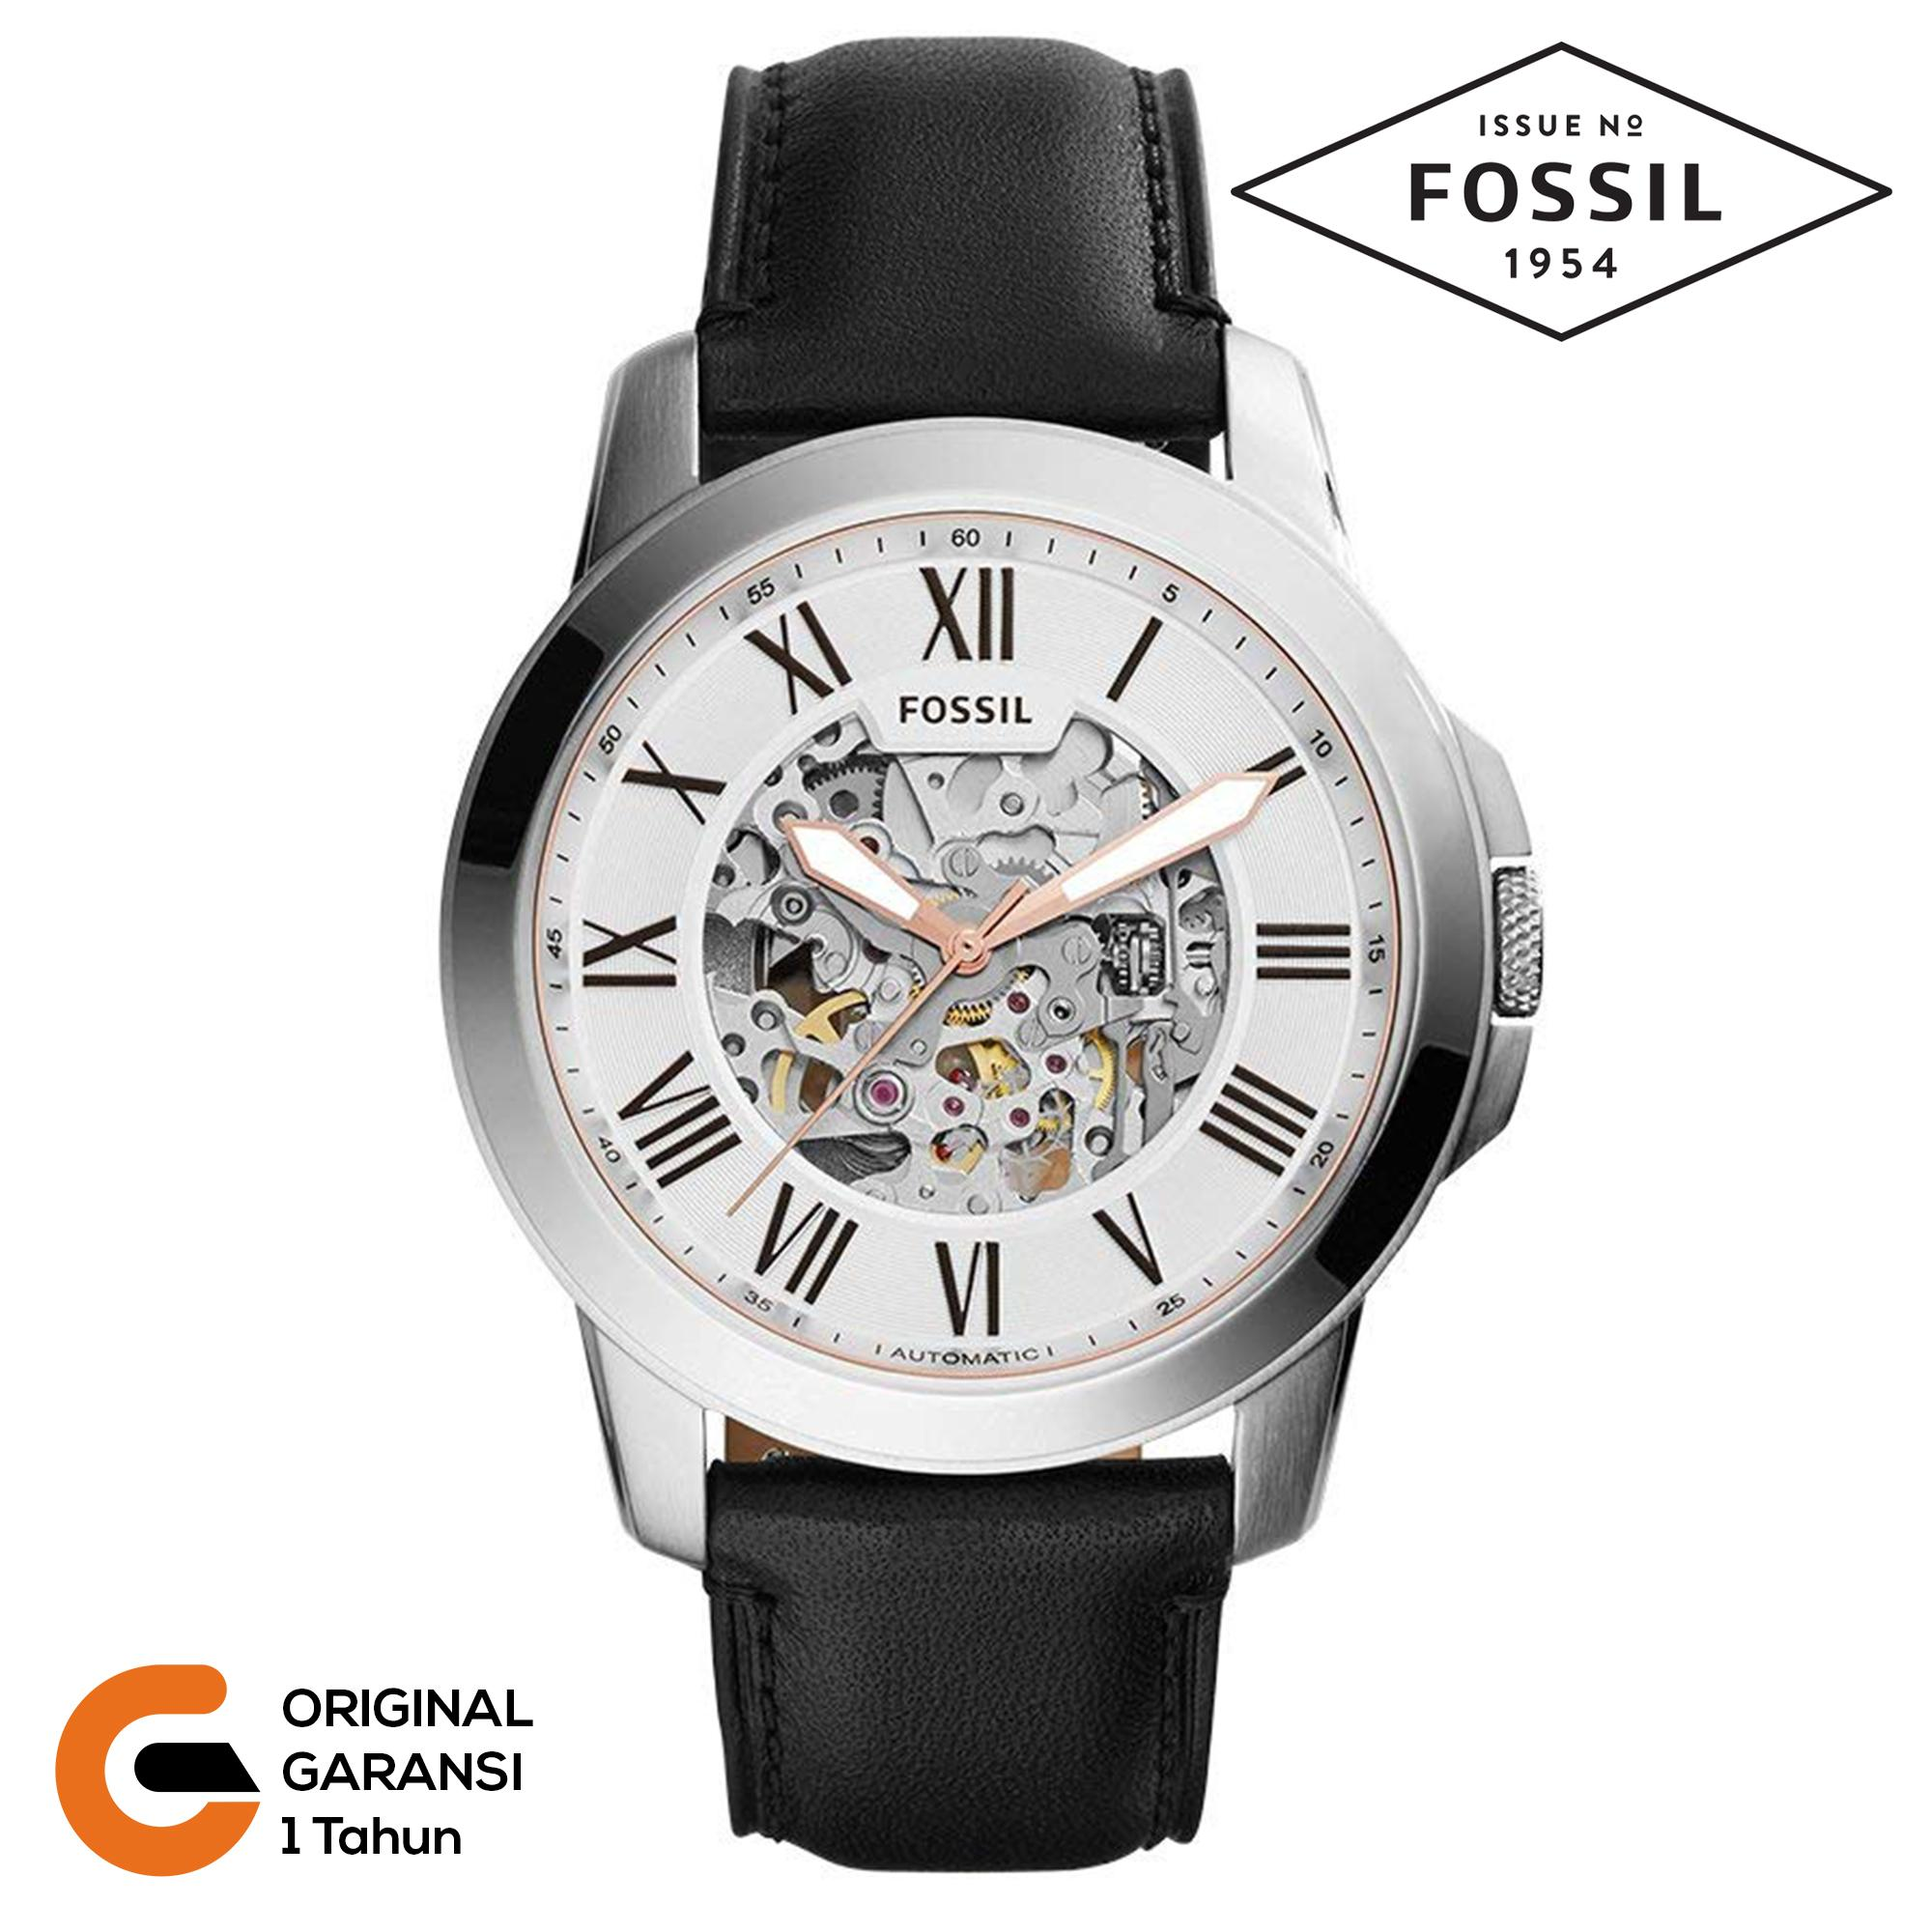 Fossil Jam Tangan Pria Fossil Grant Automatic Tali kulit Leather / Rantai Logam Stainless Steel Mechanical Automatic Movement Black Blue White Putih Hitam Biru ME3053 ME3054 ME3103 ME3052 EM3111 ME3054 ME3102 ME3099